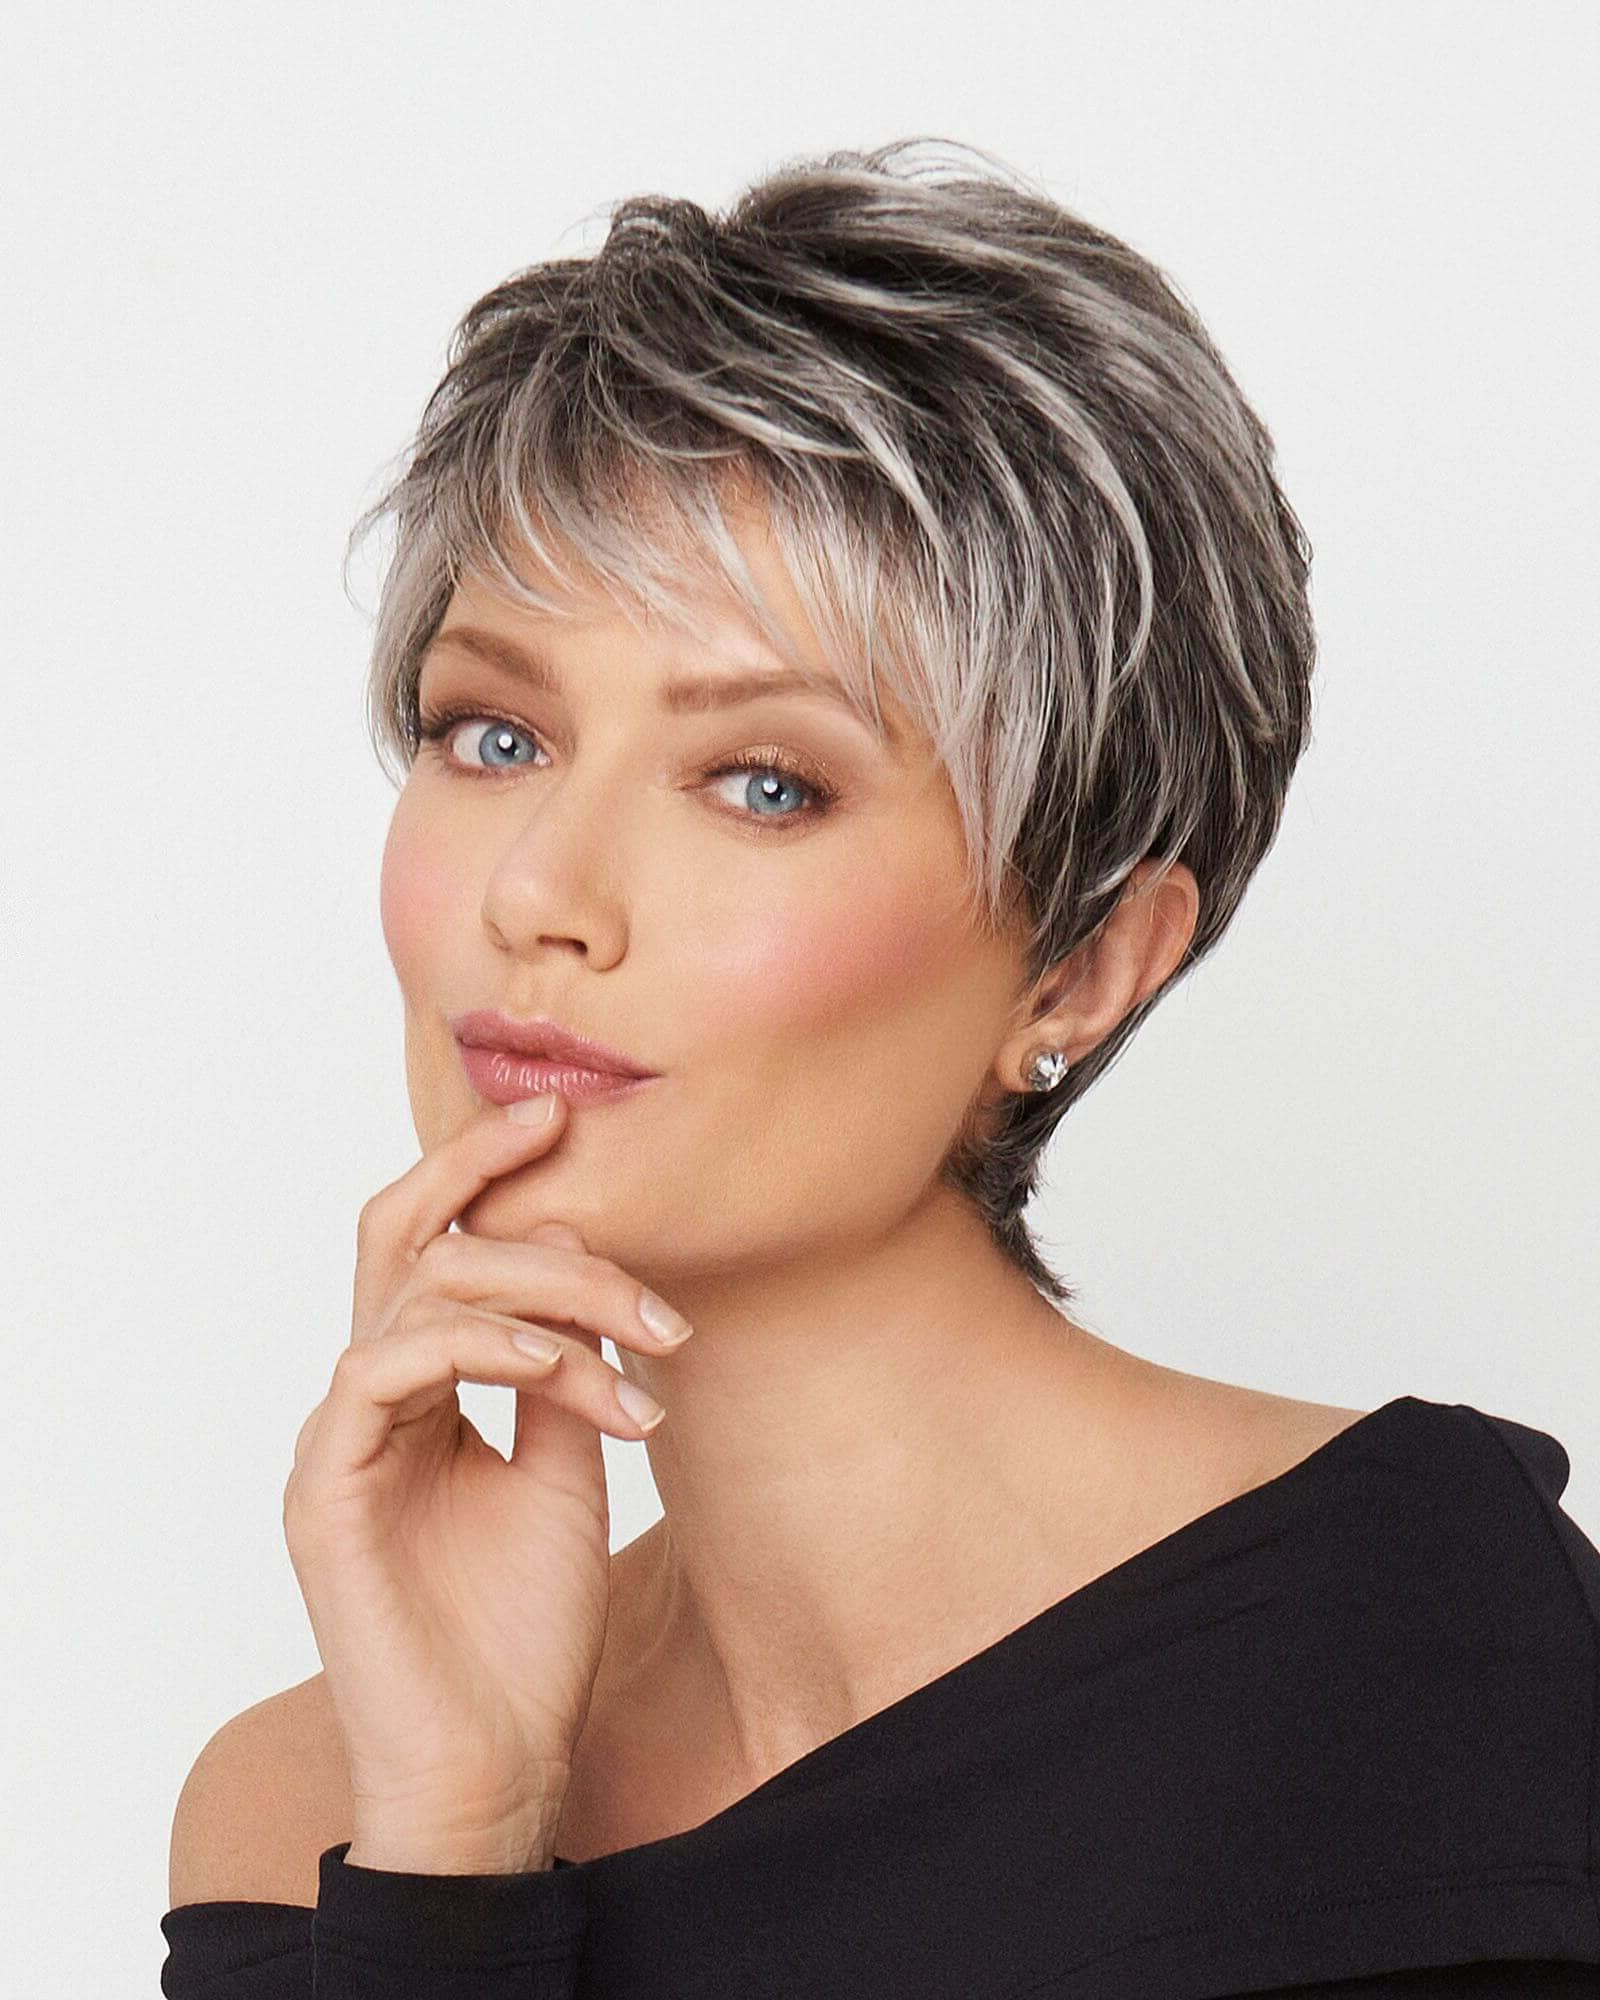 50 Pixie Haircuts You'll See Trending In 2019 With Glamorous Pixie Hairstyles (View 10 of 20)